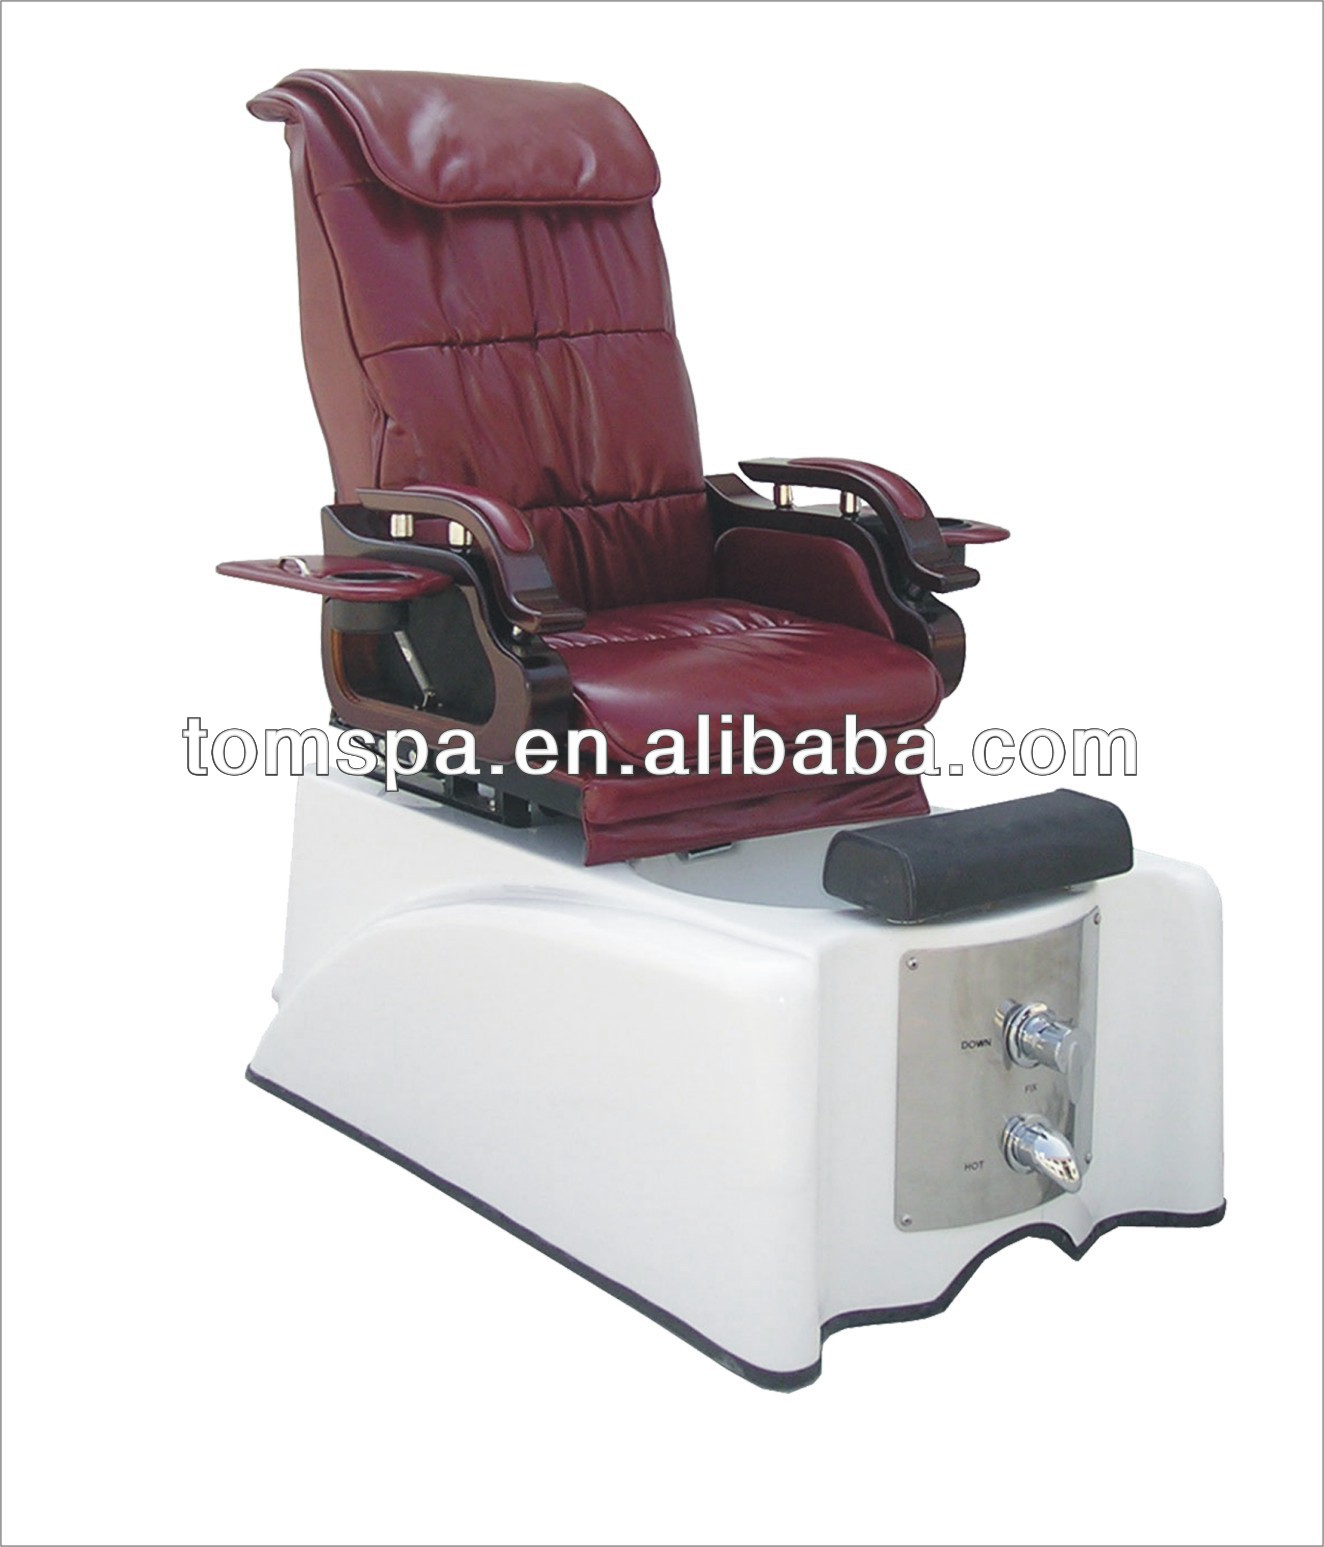 Ispa Pedicure Chair Ispa Pedicure Chair Suppliers and